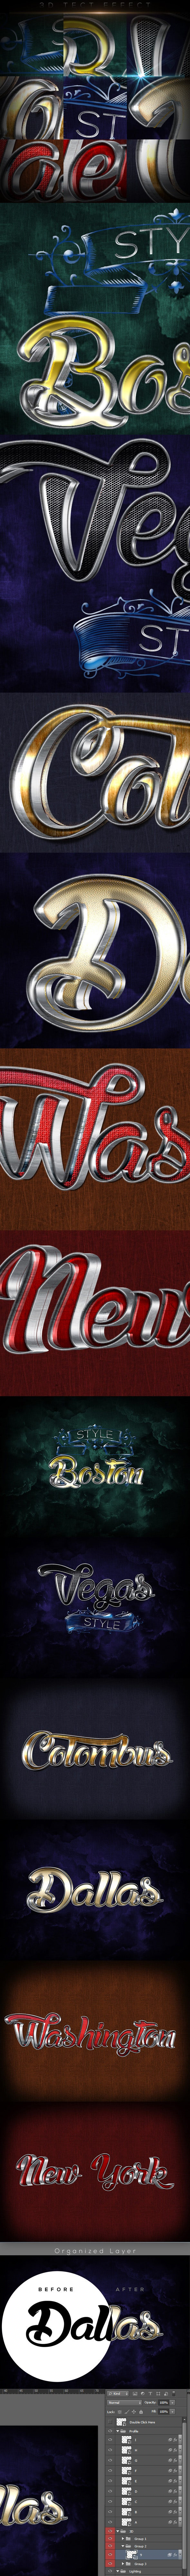 3D Text Effect B160924 - Styles Photoshop